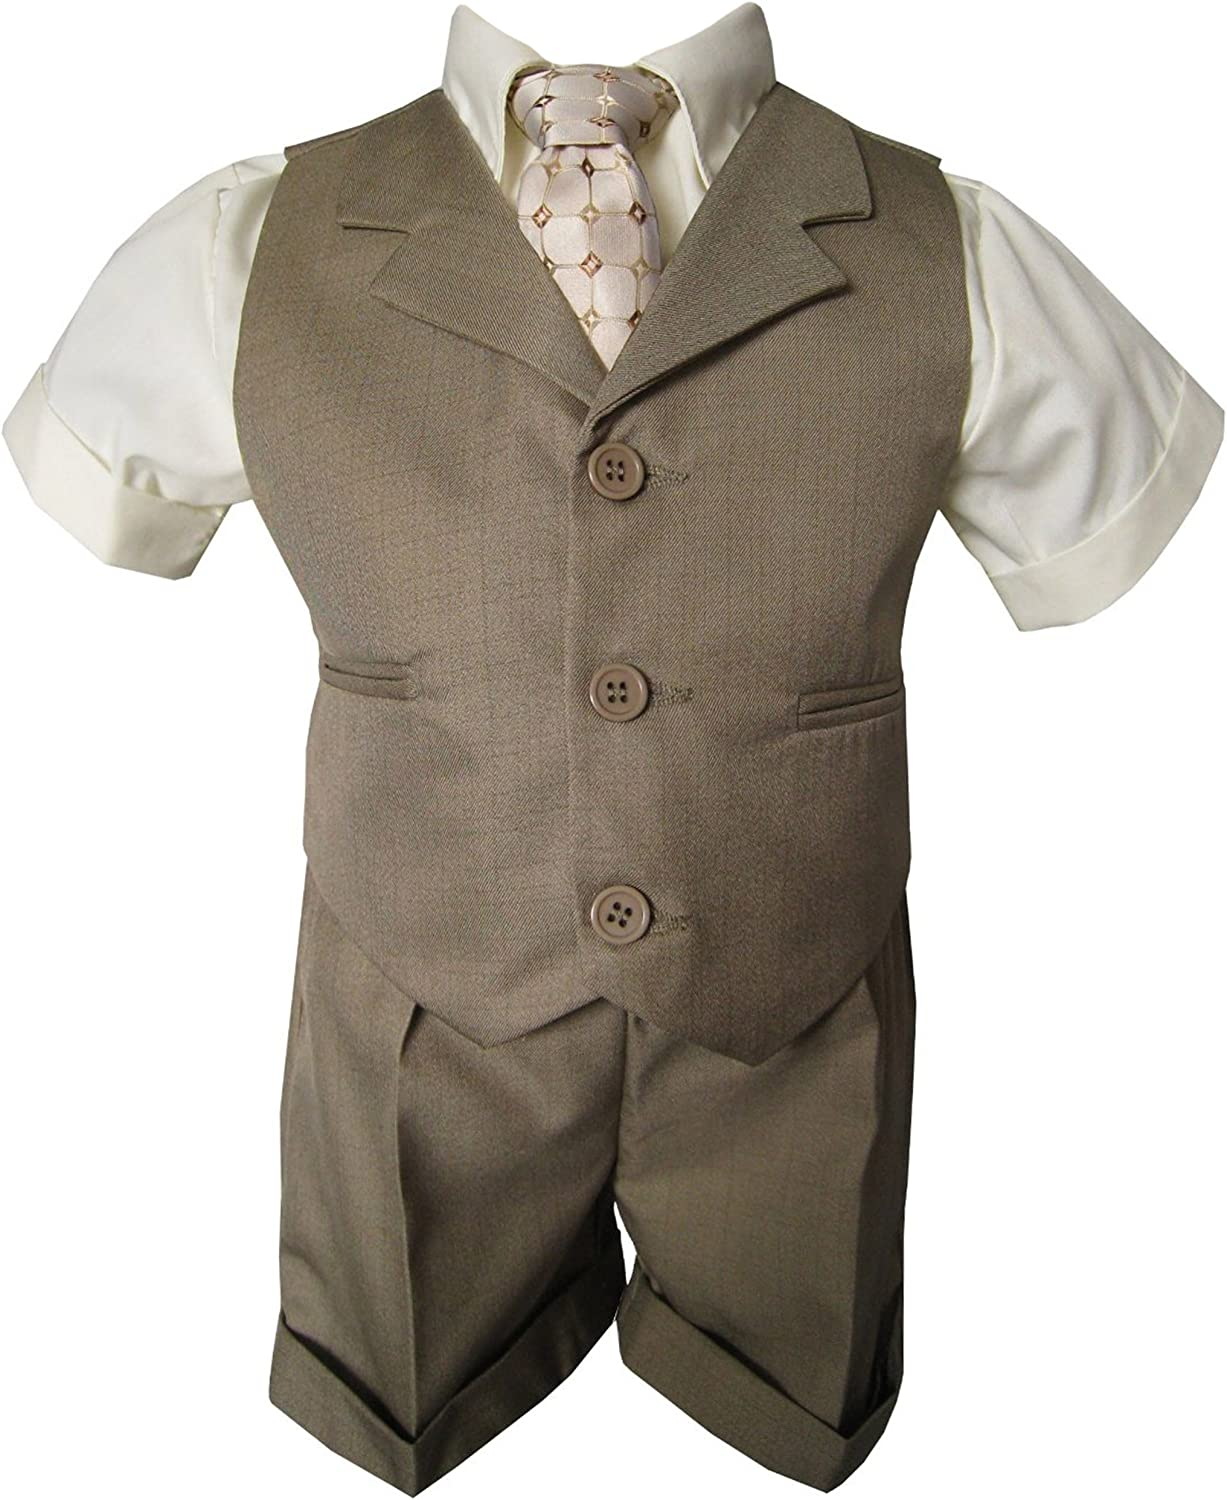 Gino Giovanni Baby and Toddler Boy Natural Suit Ves Sales results No. 1 Oklahoma City Mall Beige Summer